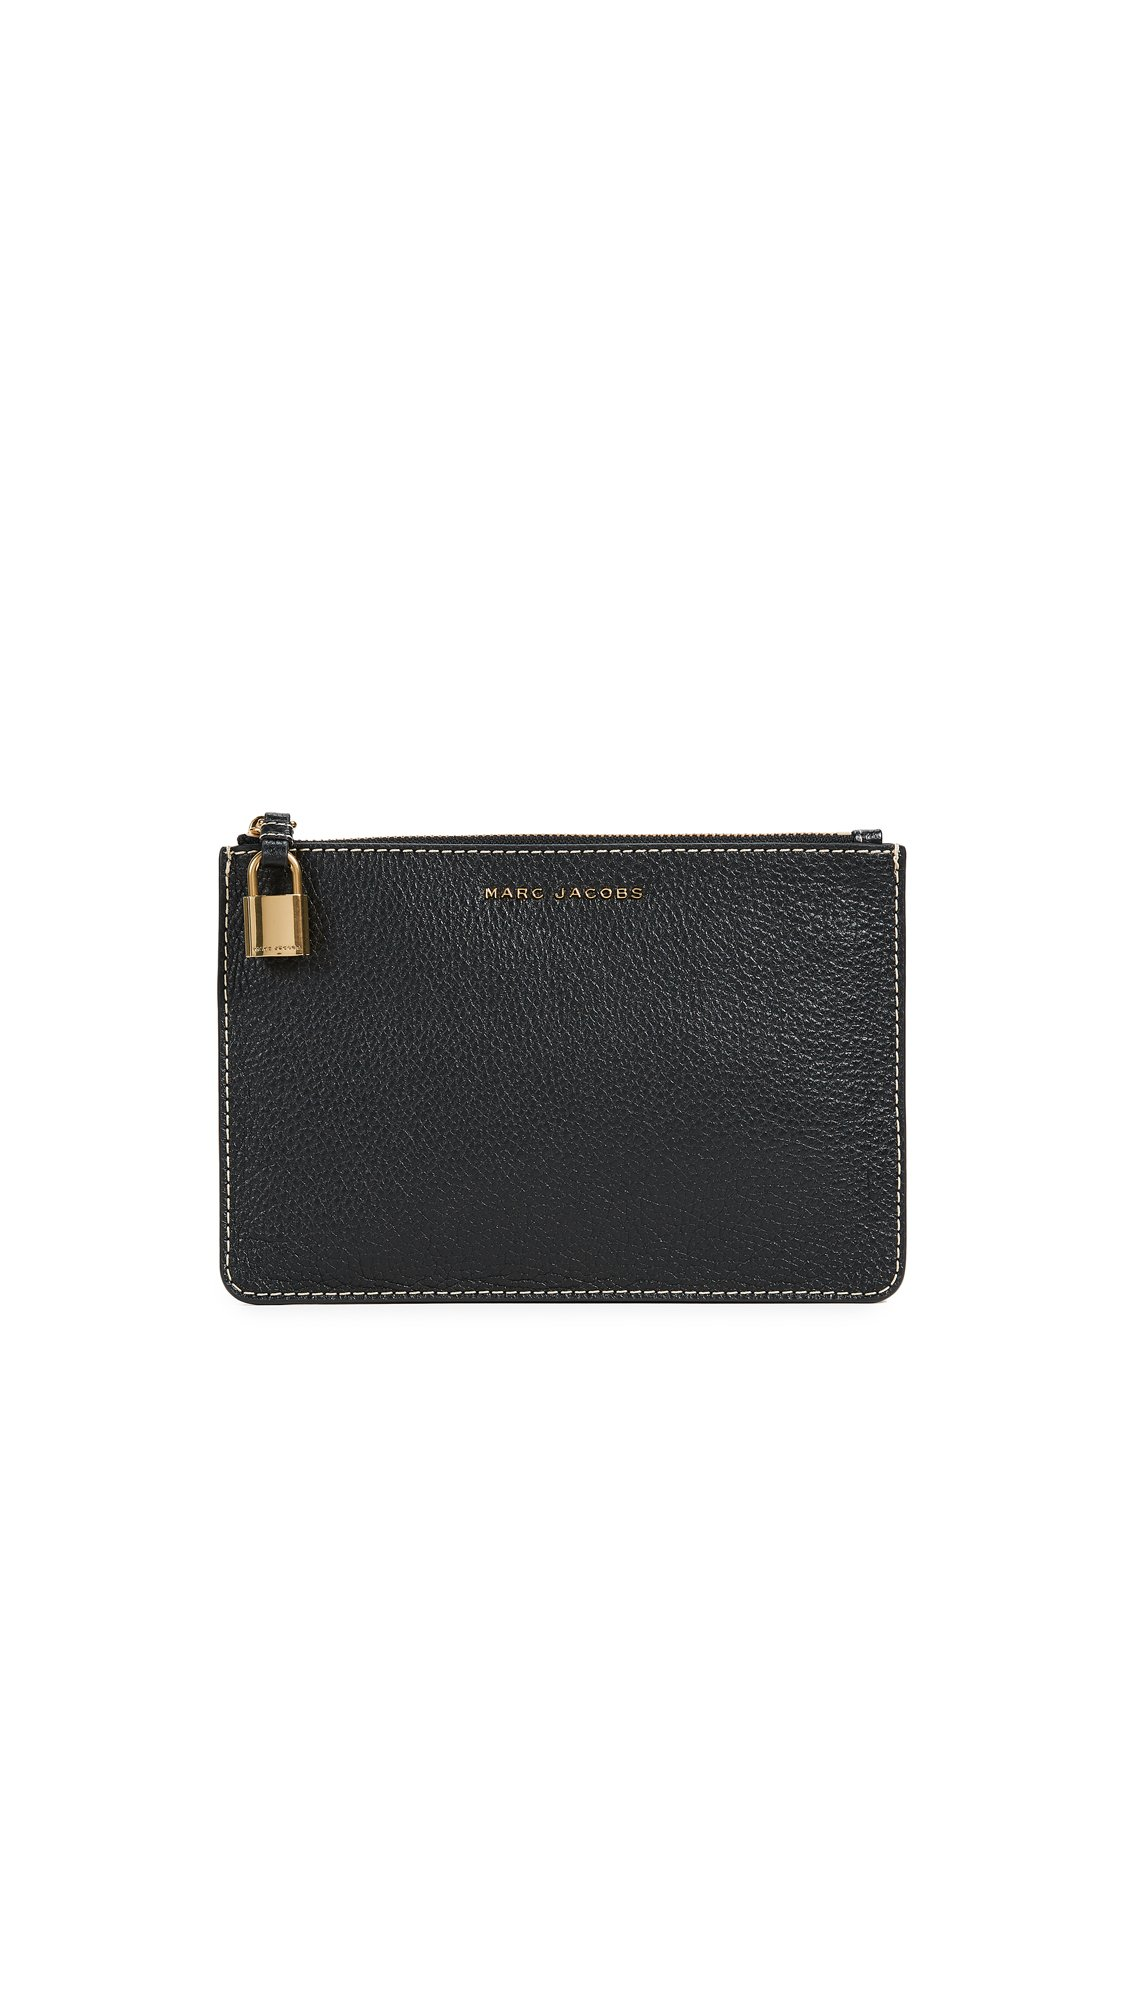 Marc Jacobs Women's The Grind Medium Pouch, Black, One Size